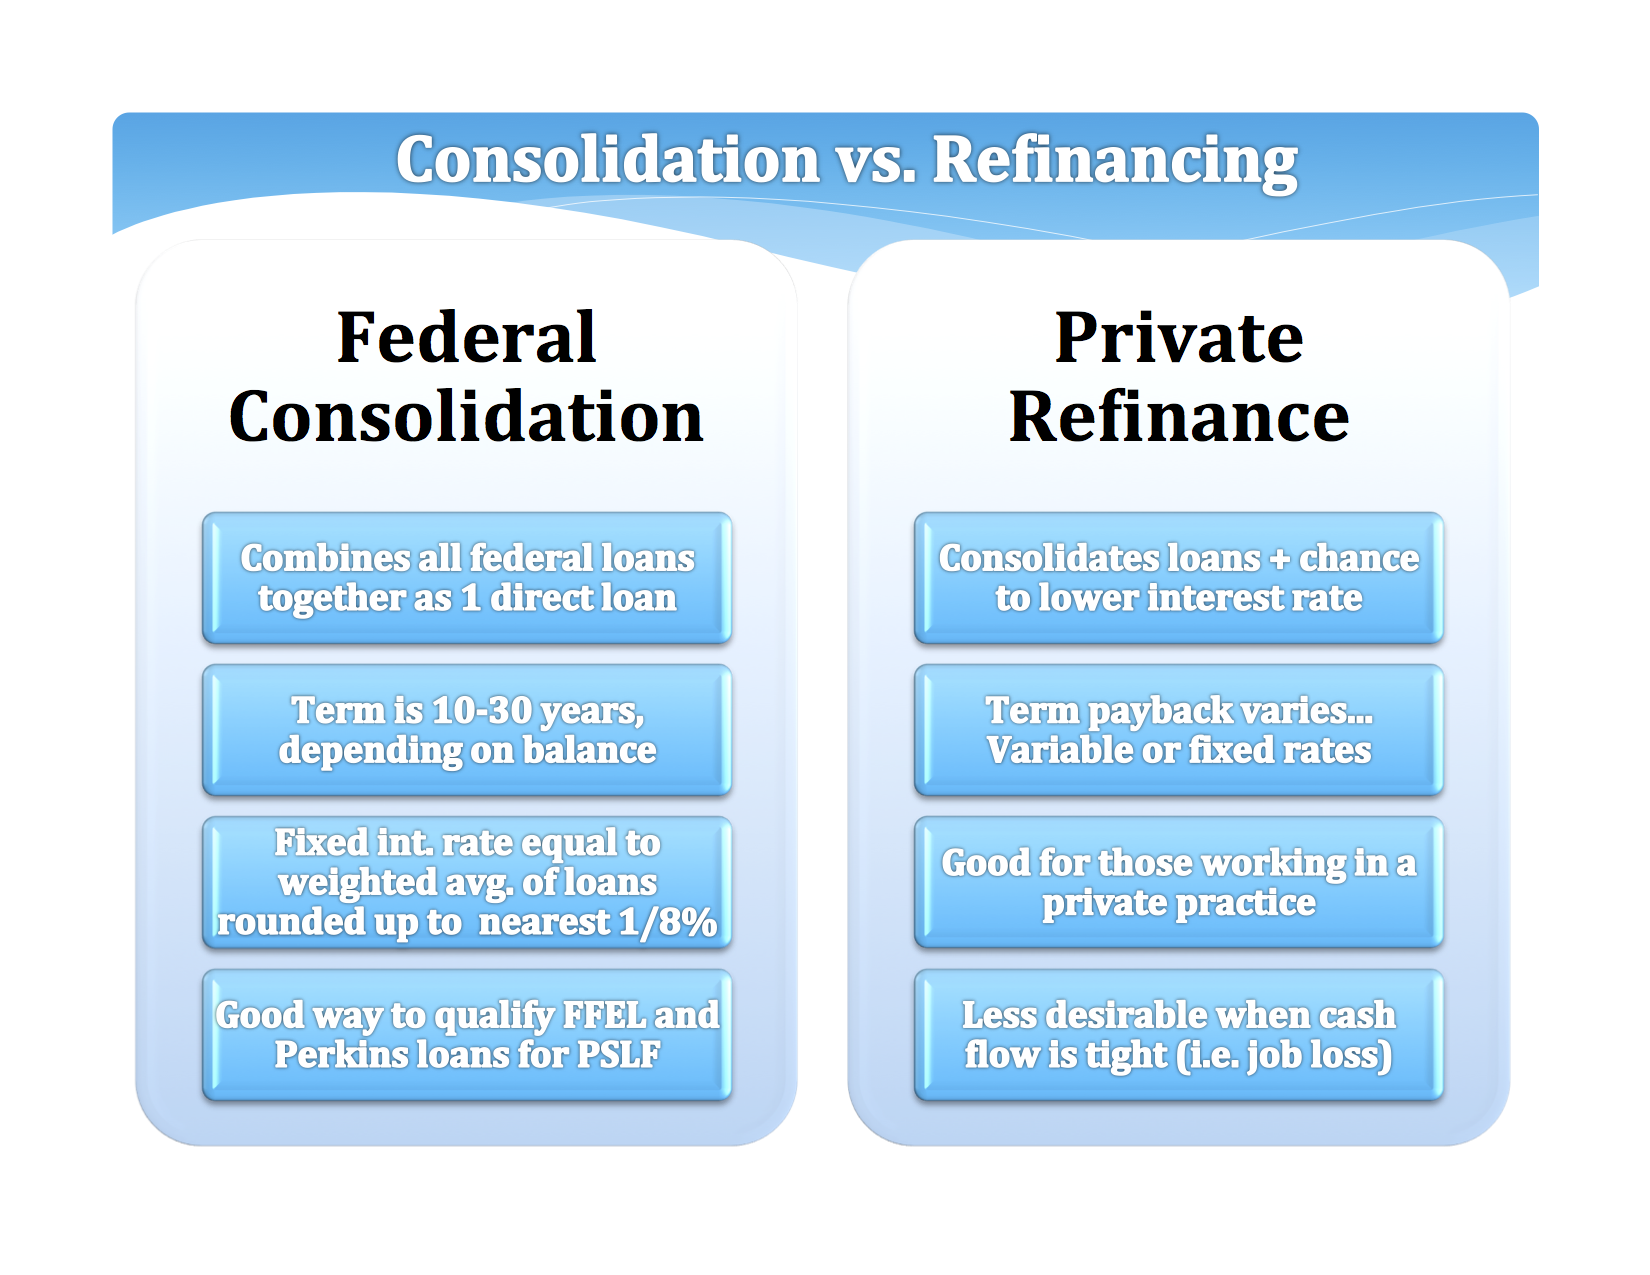 Always compare refinancing Federal debt to PAYE, REPAYE, and IBR before signing the dotted line because there's no turning back once the loans are refinanced.